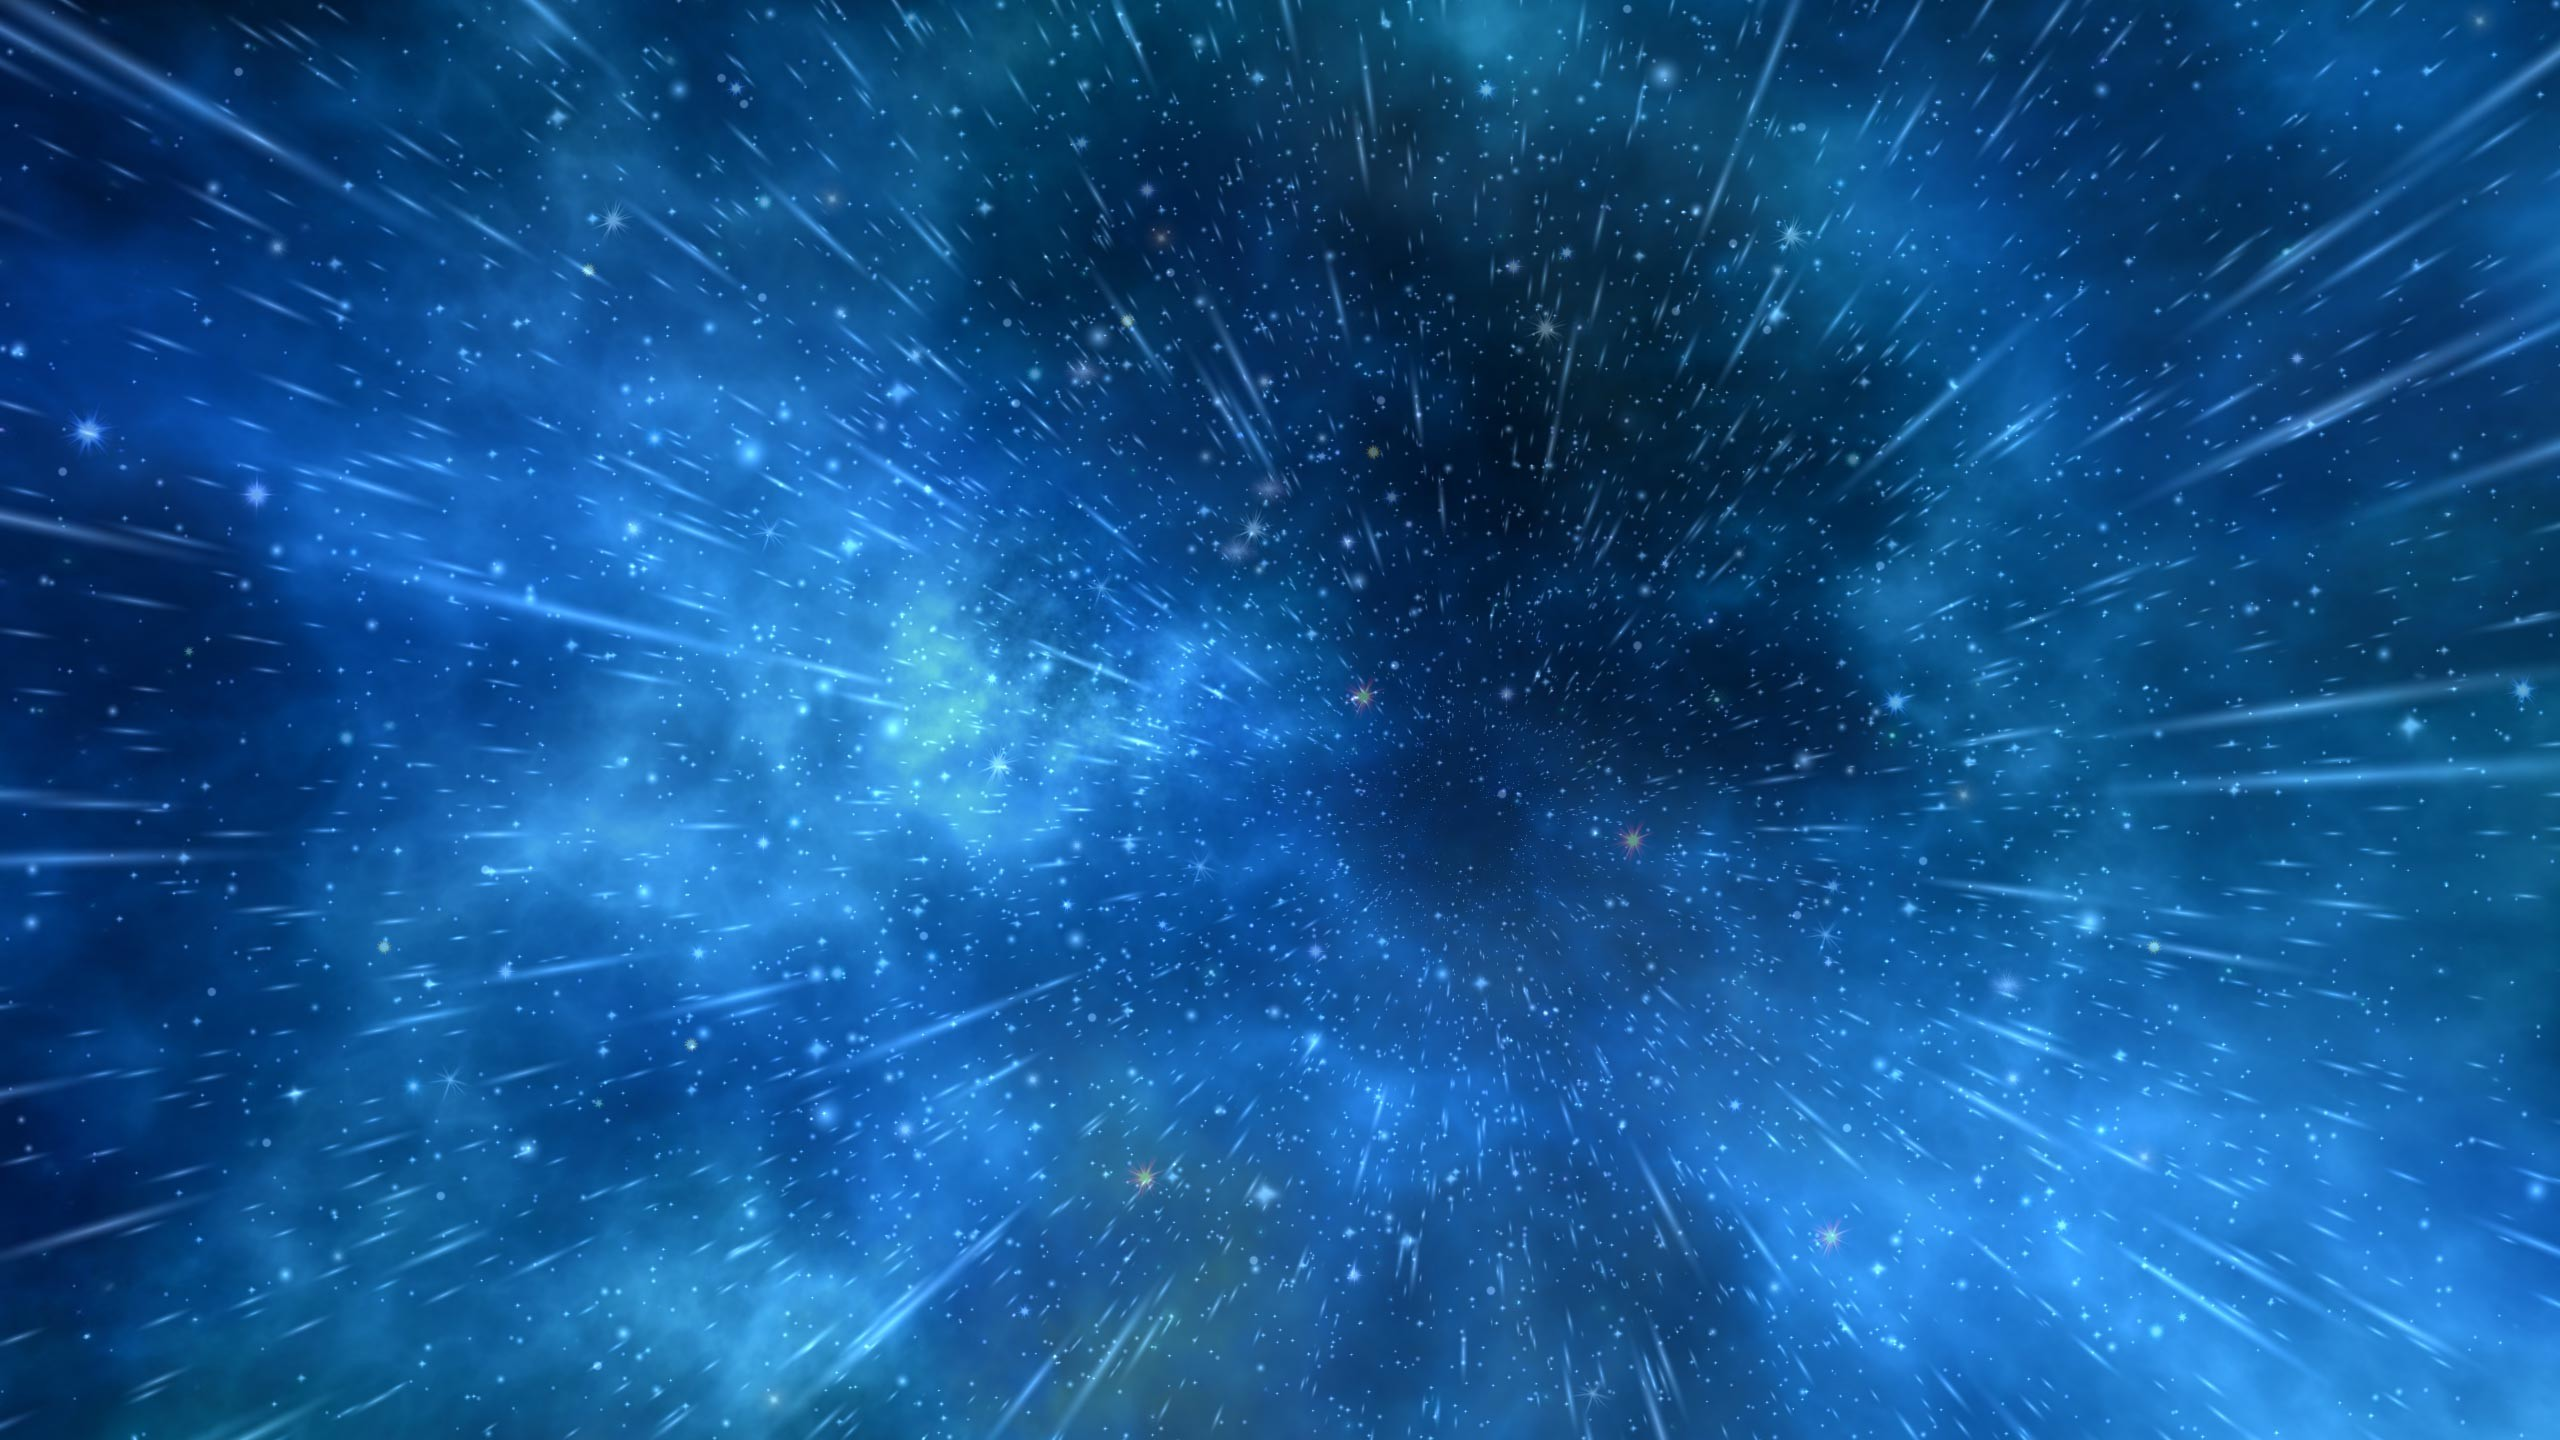 3D Space Background (40 Wallpapers)